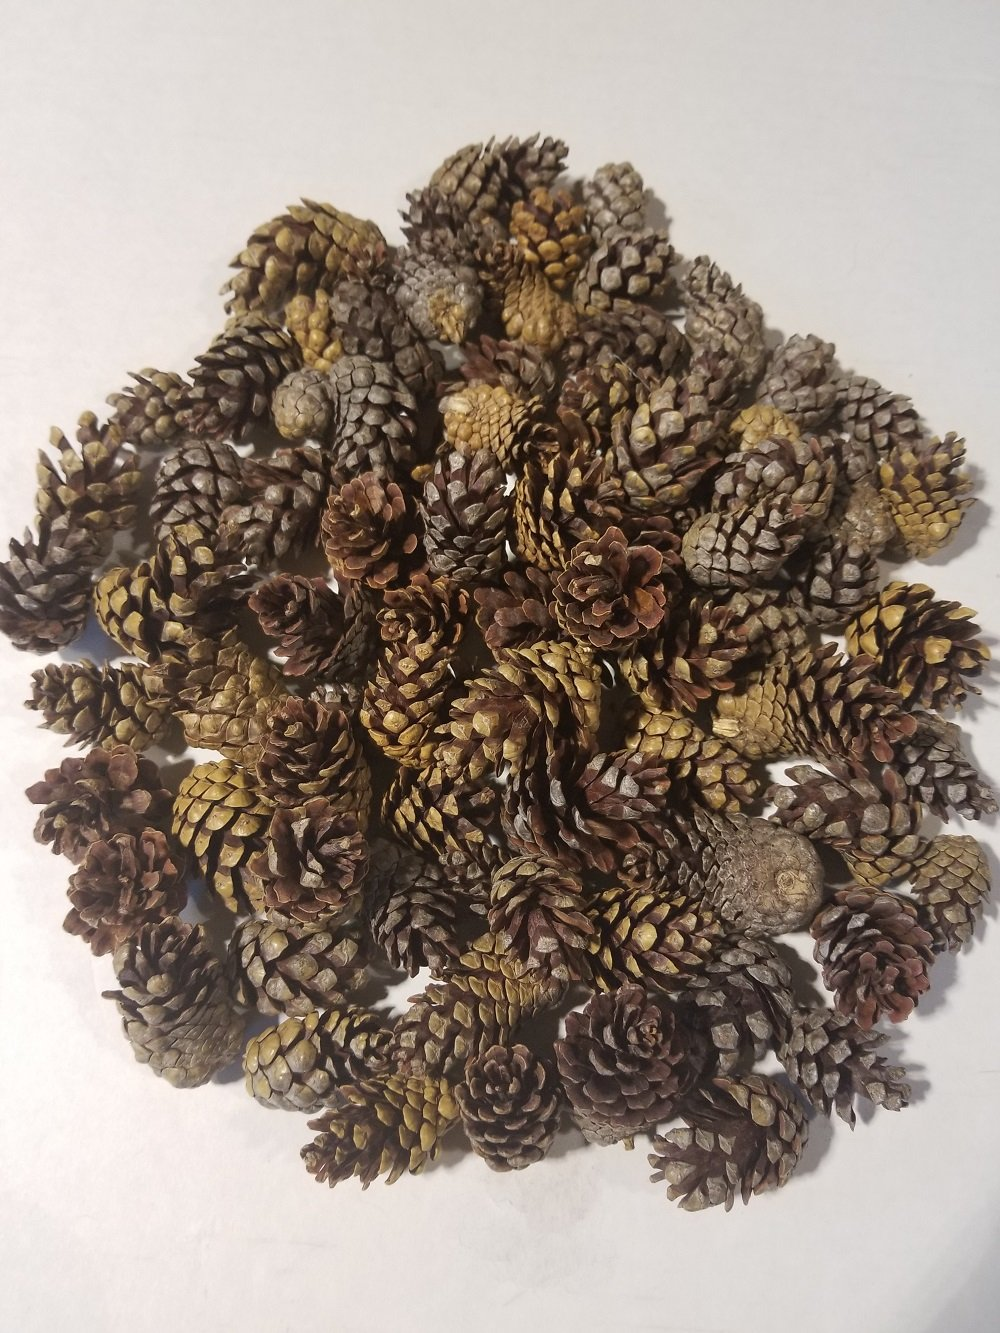 Large Bag of Weathered Small Pinecones - Perfect for Weddings or Bowl Fillers - Unscented for Decoration Or Homemade Potpourri - Made in USA Just Browsin